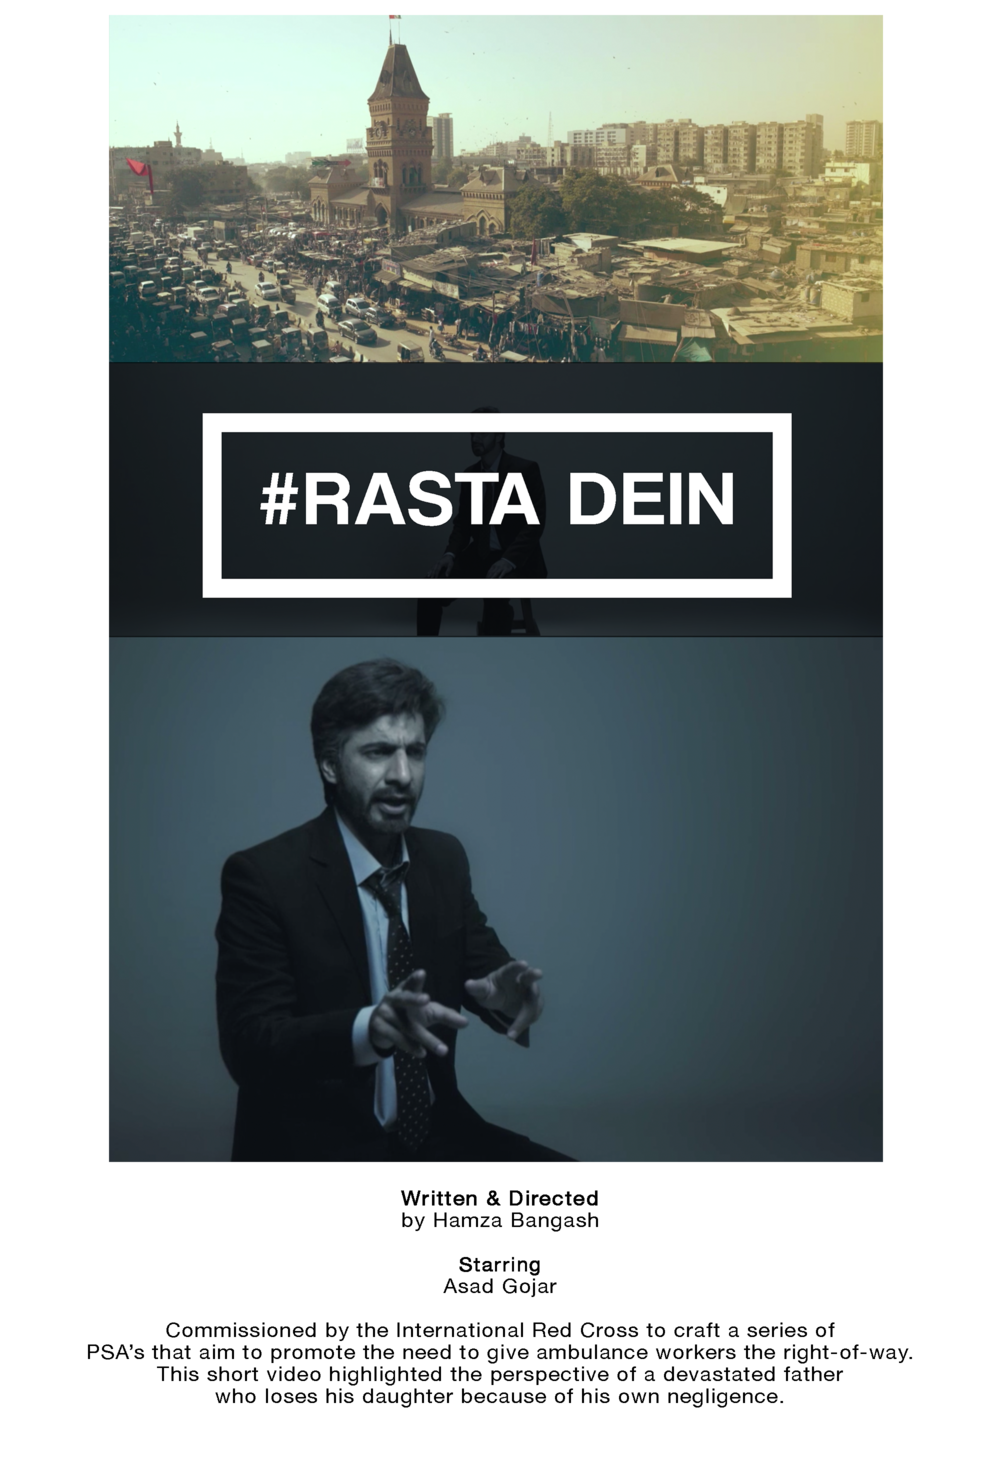 #Rasta Dein: Father's Story